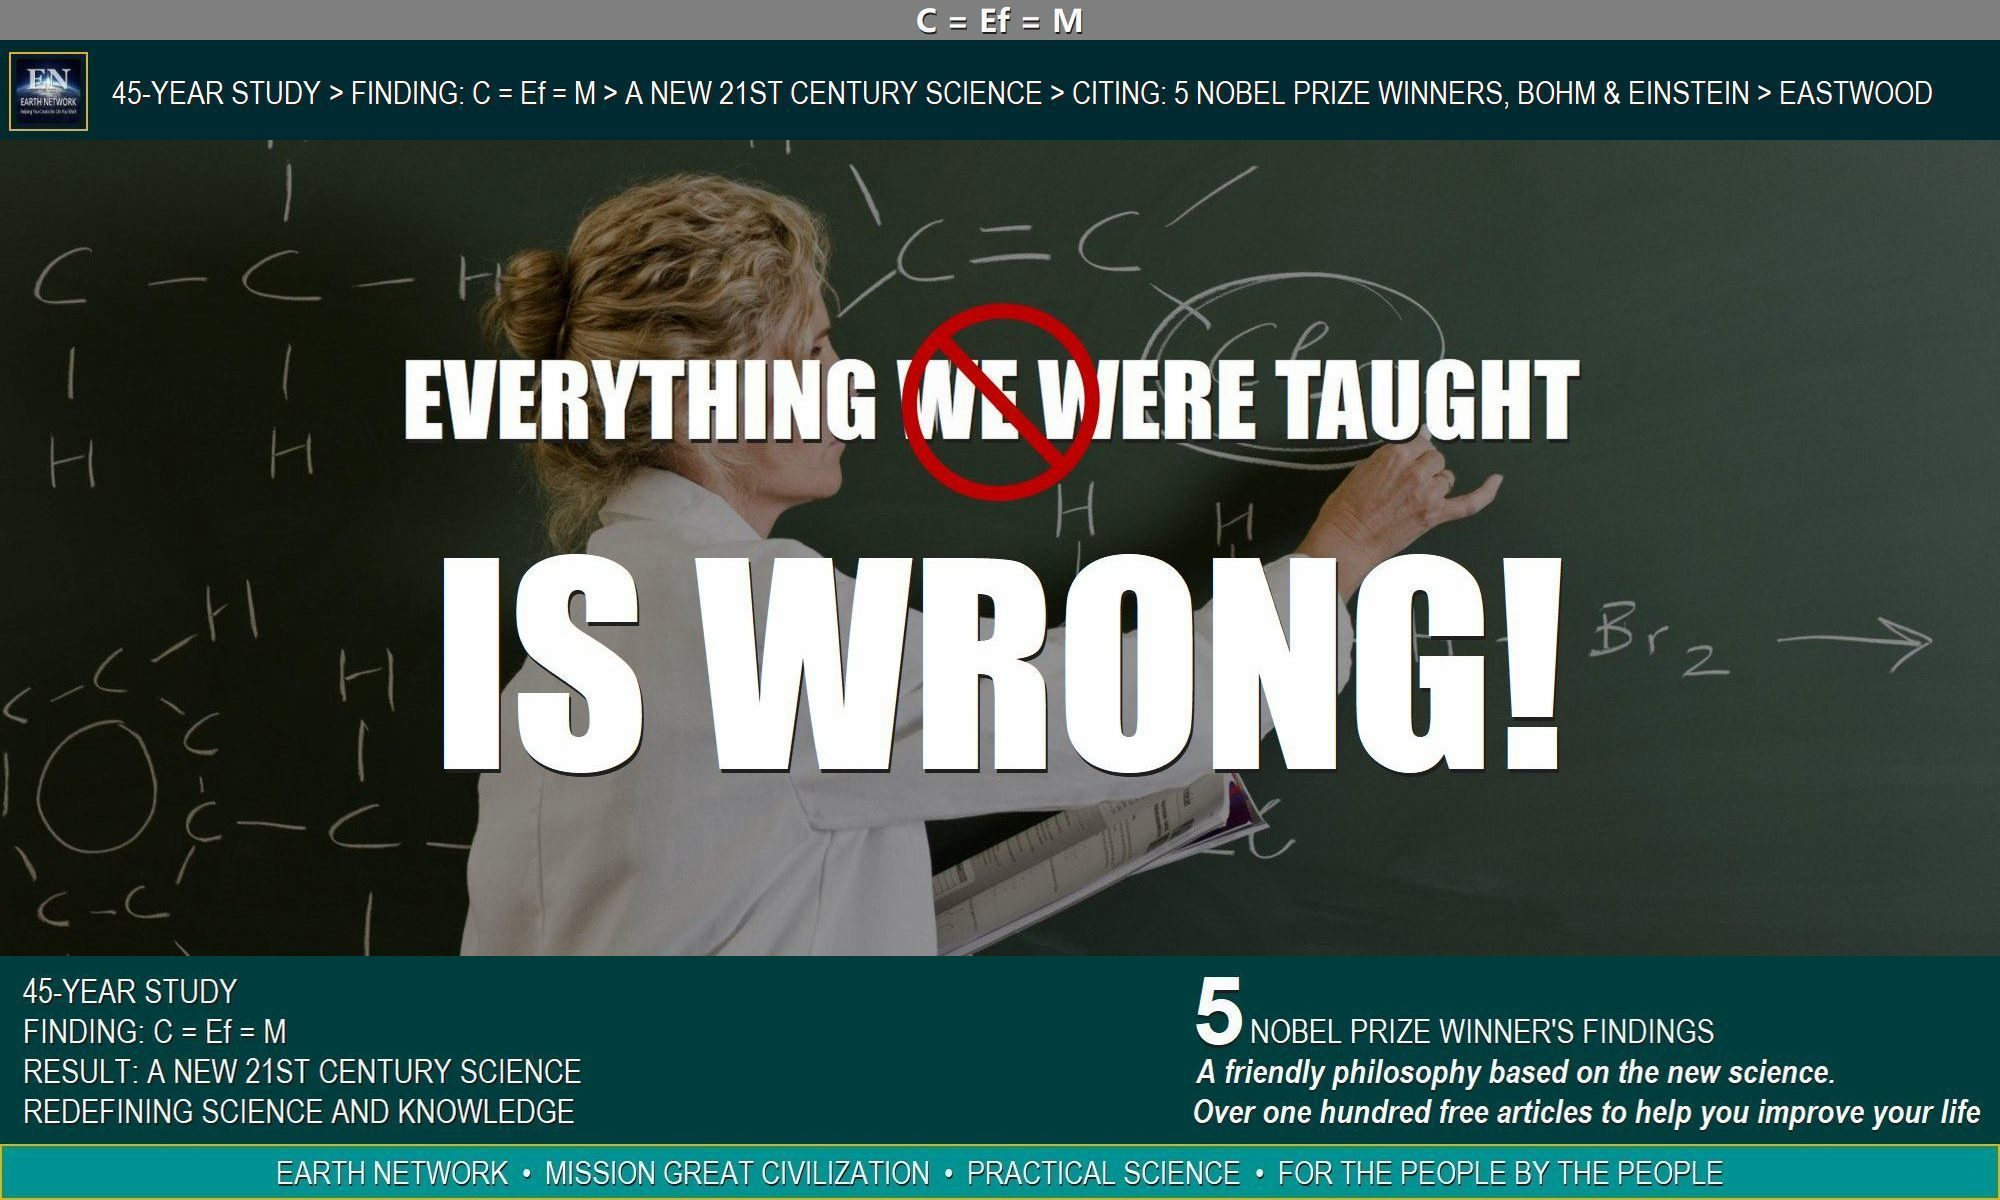 teacher-depicts-everything-we-were-taught-is-wrong-and-writing-mind-over-matter-facts-proof-science-evidence-power-knowledge-truth